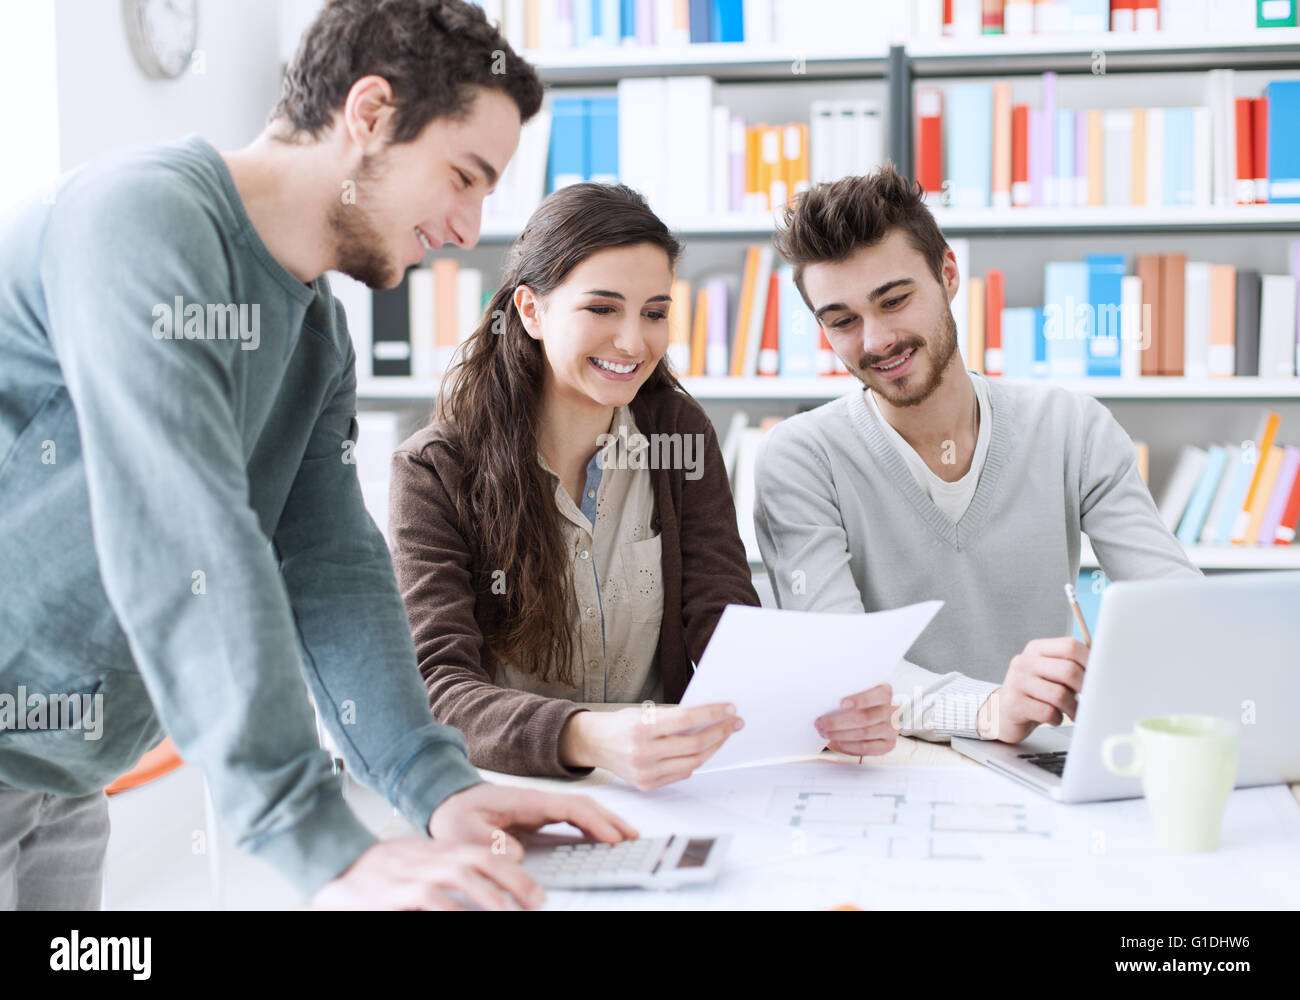 College students working together on a project, education and learning concept - Stock Image